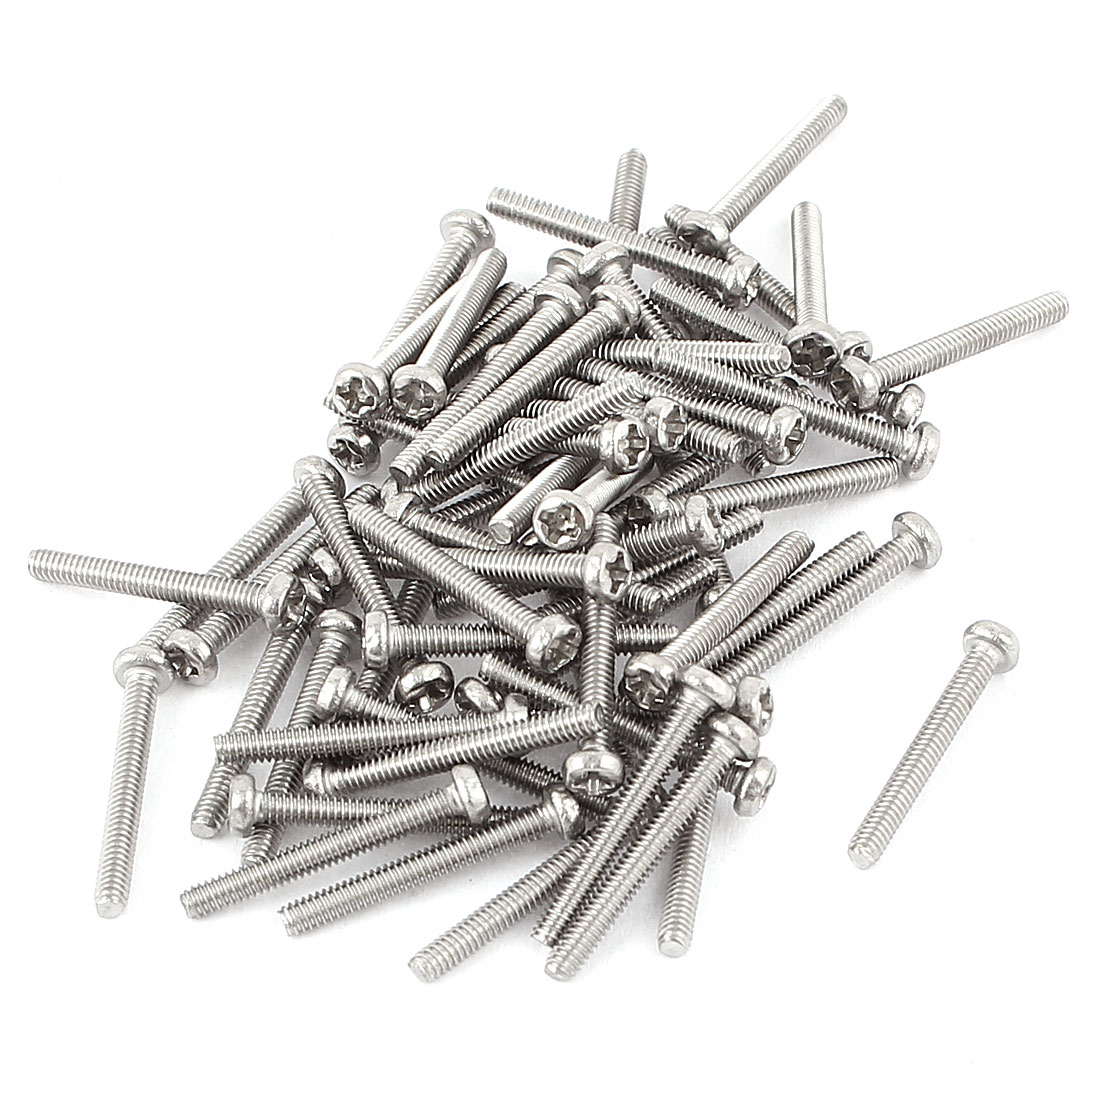 M2 x 16mm 304 Stainless Steel Crosshead Phillips Round Head Screws Bolt 60pcs